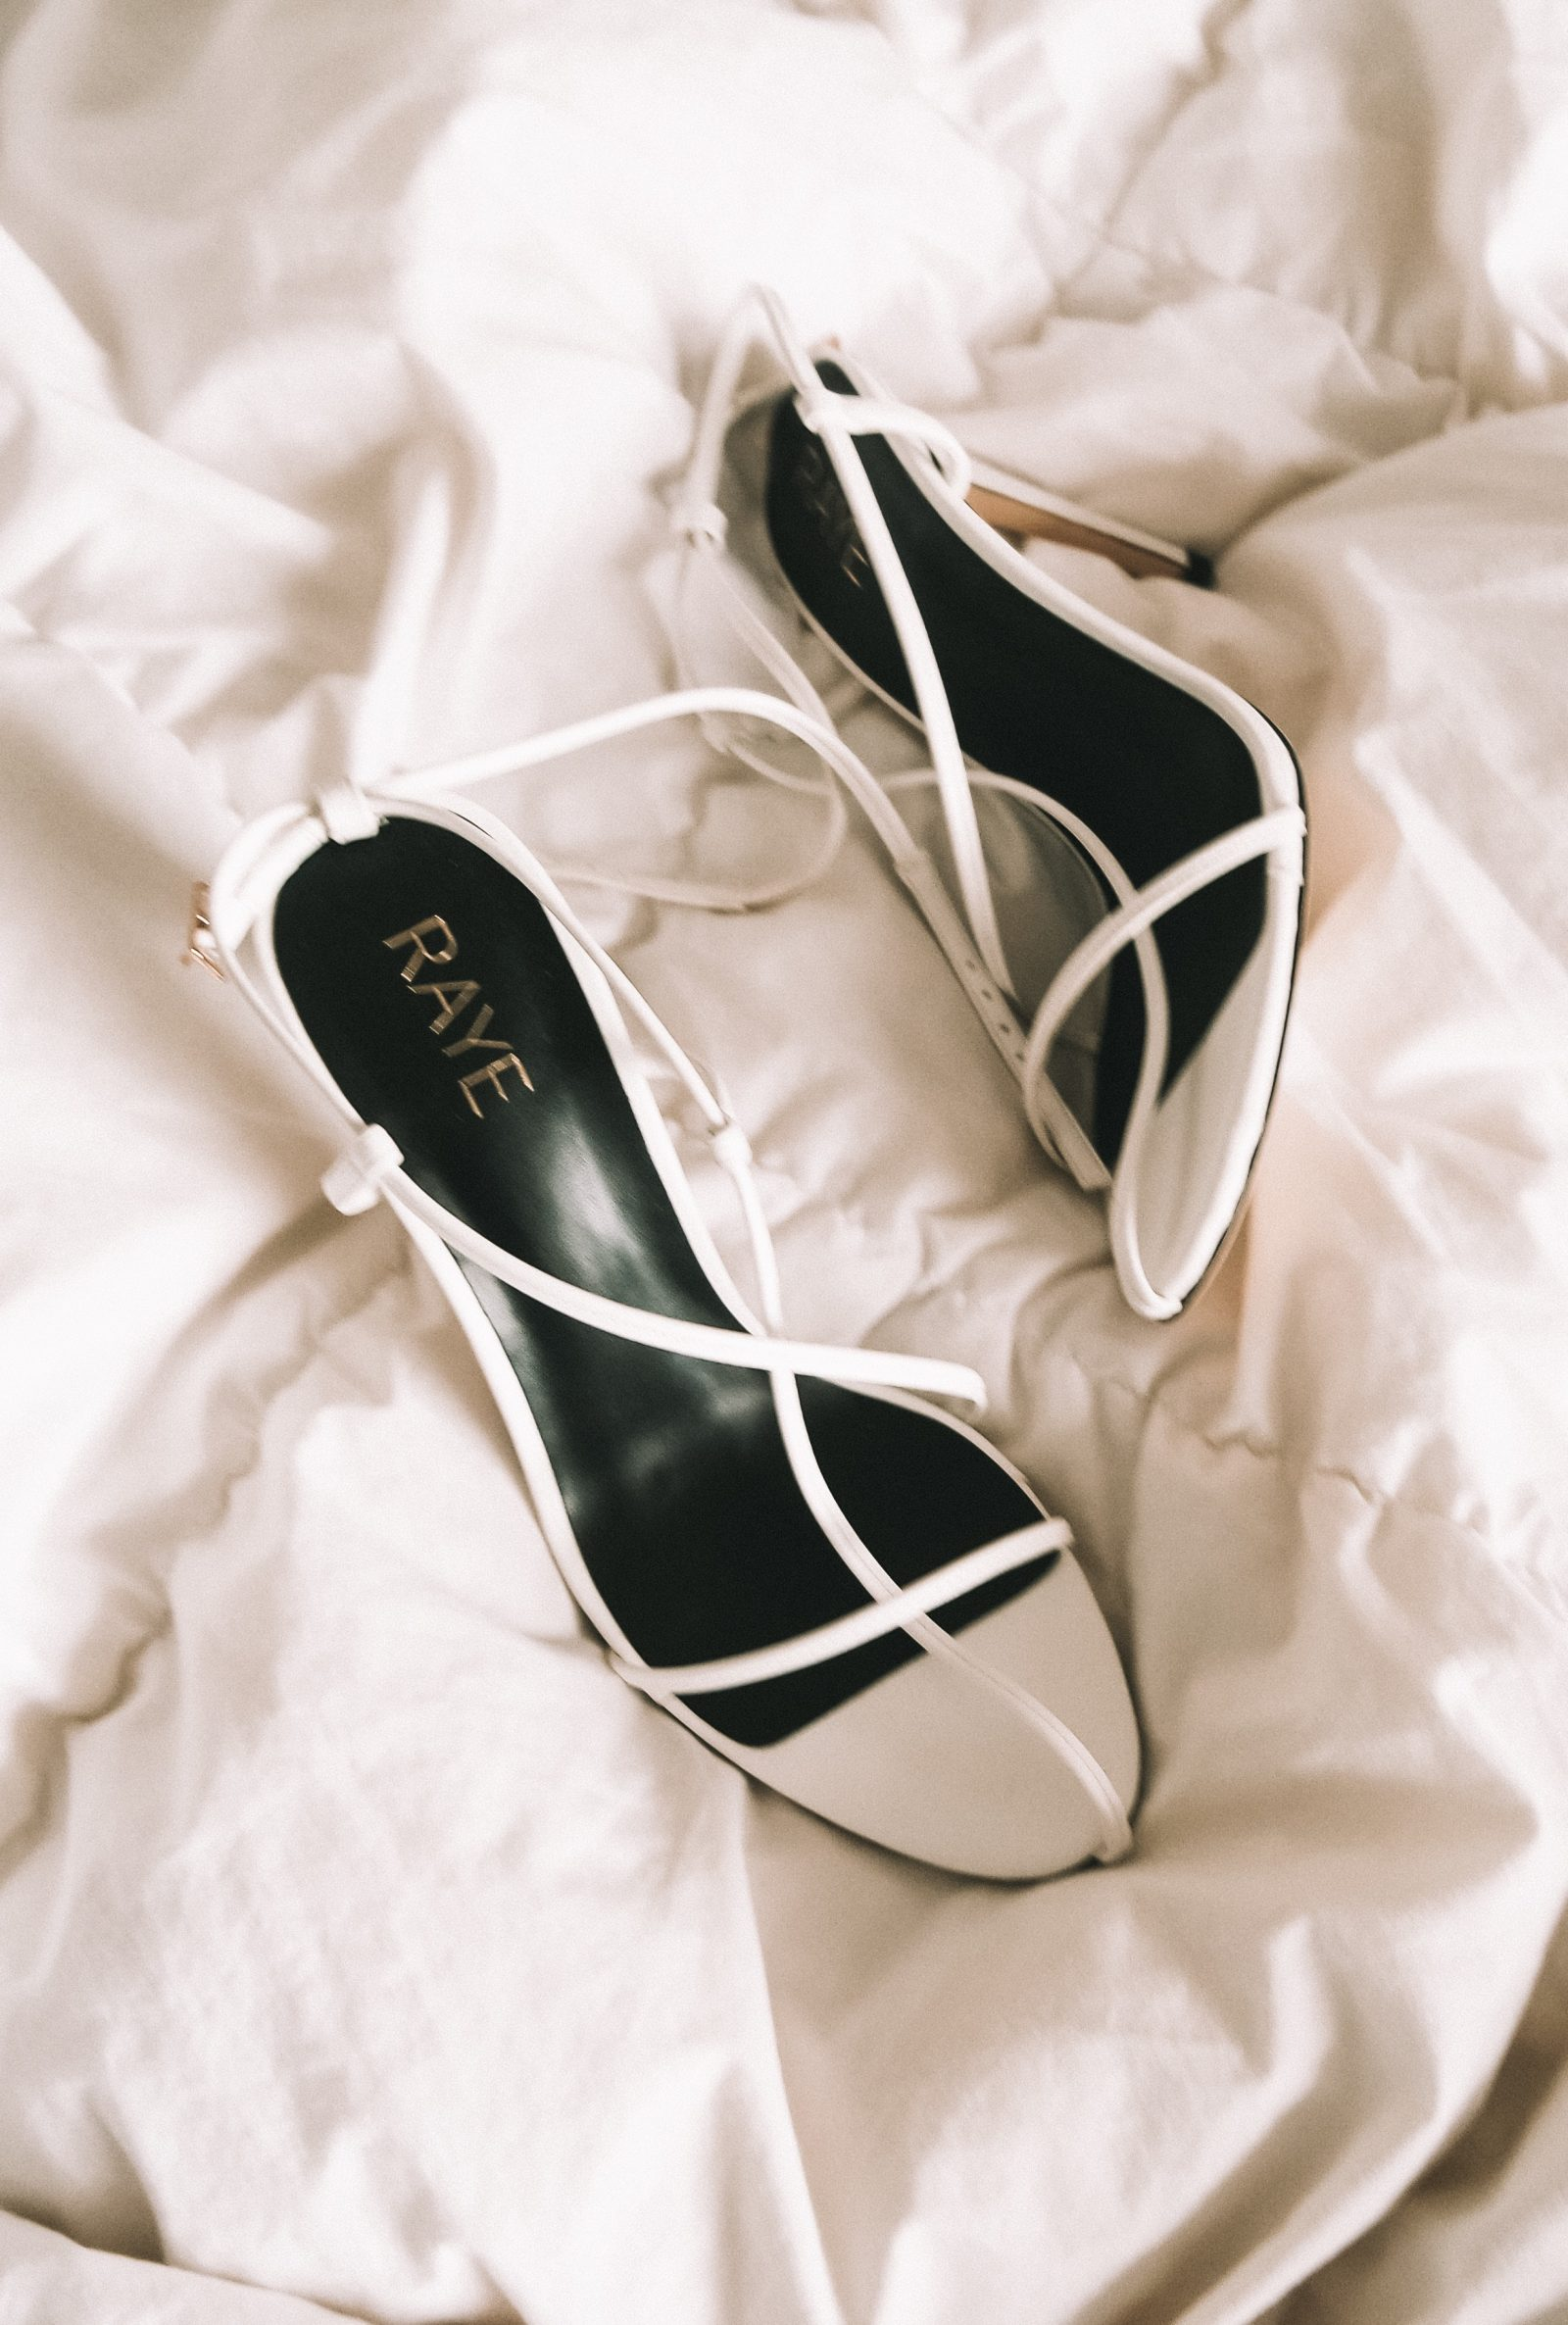 Revolve Cage Shoes - White - Fashion Blogger Sinead Crowe